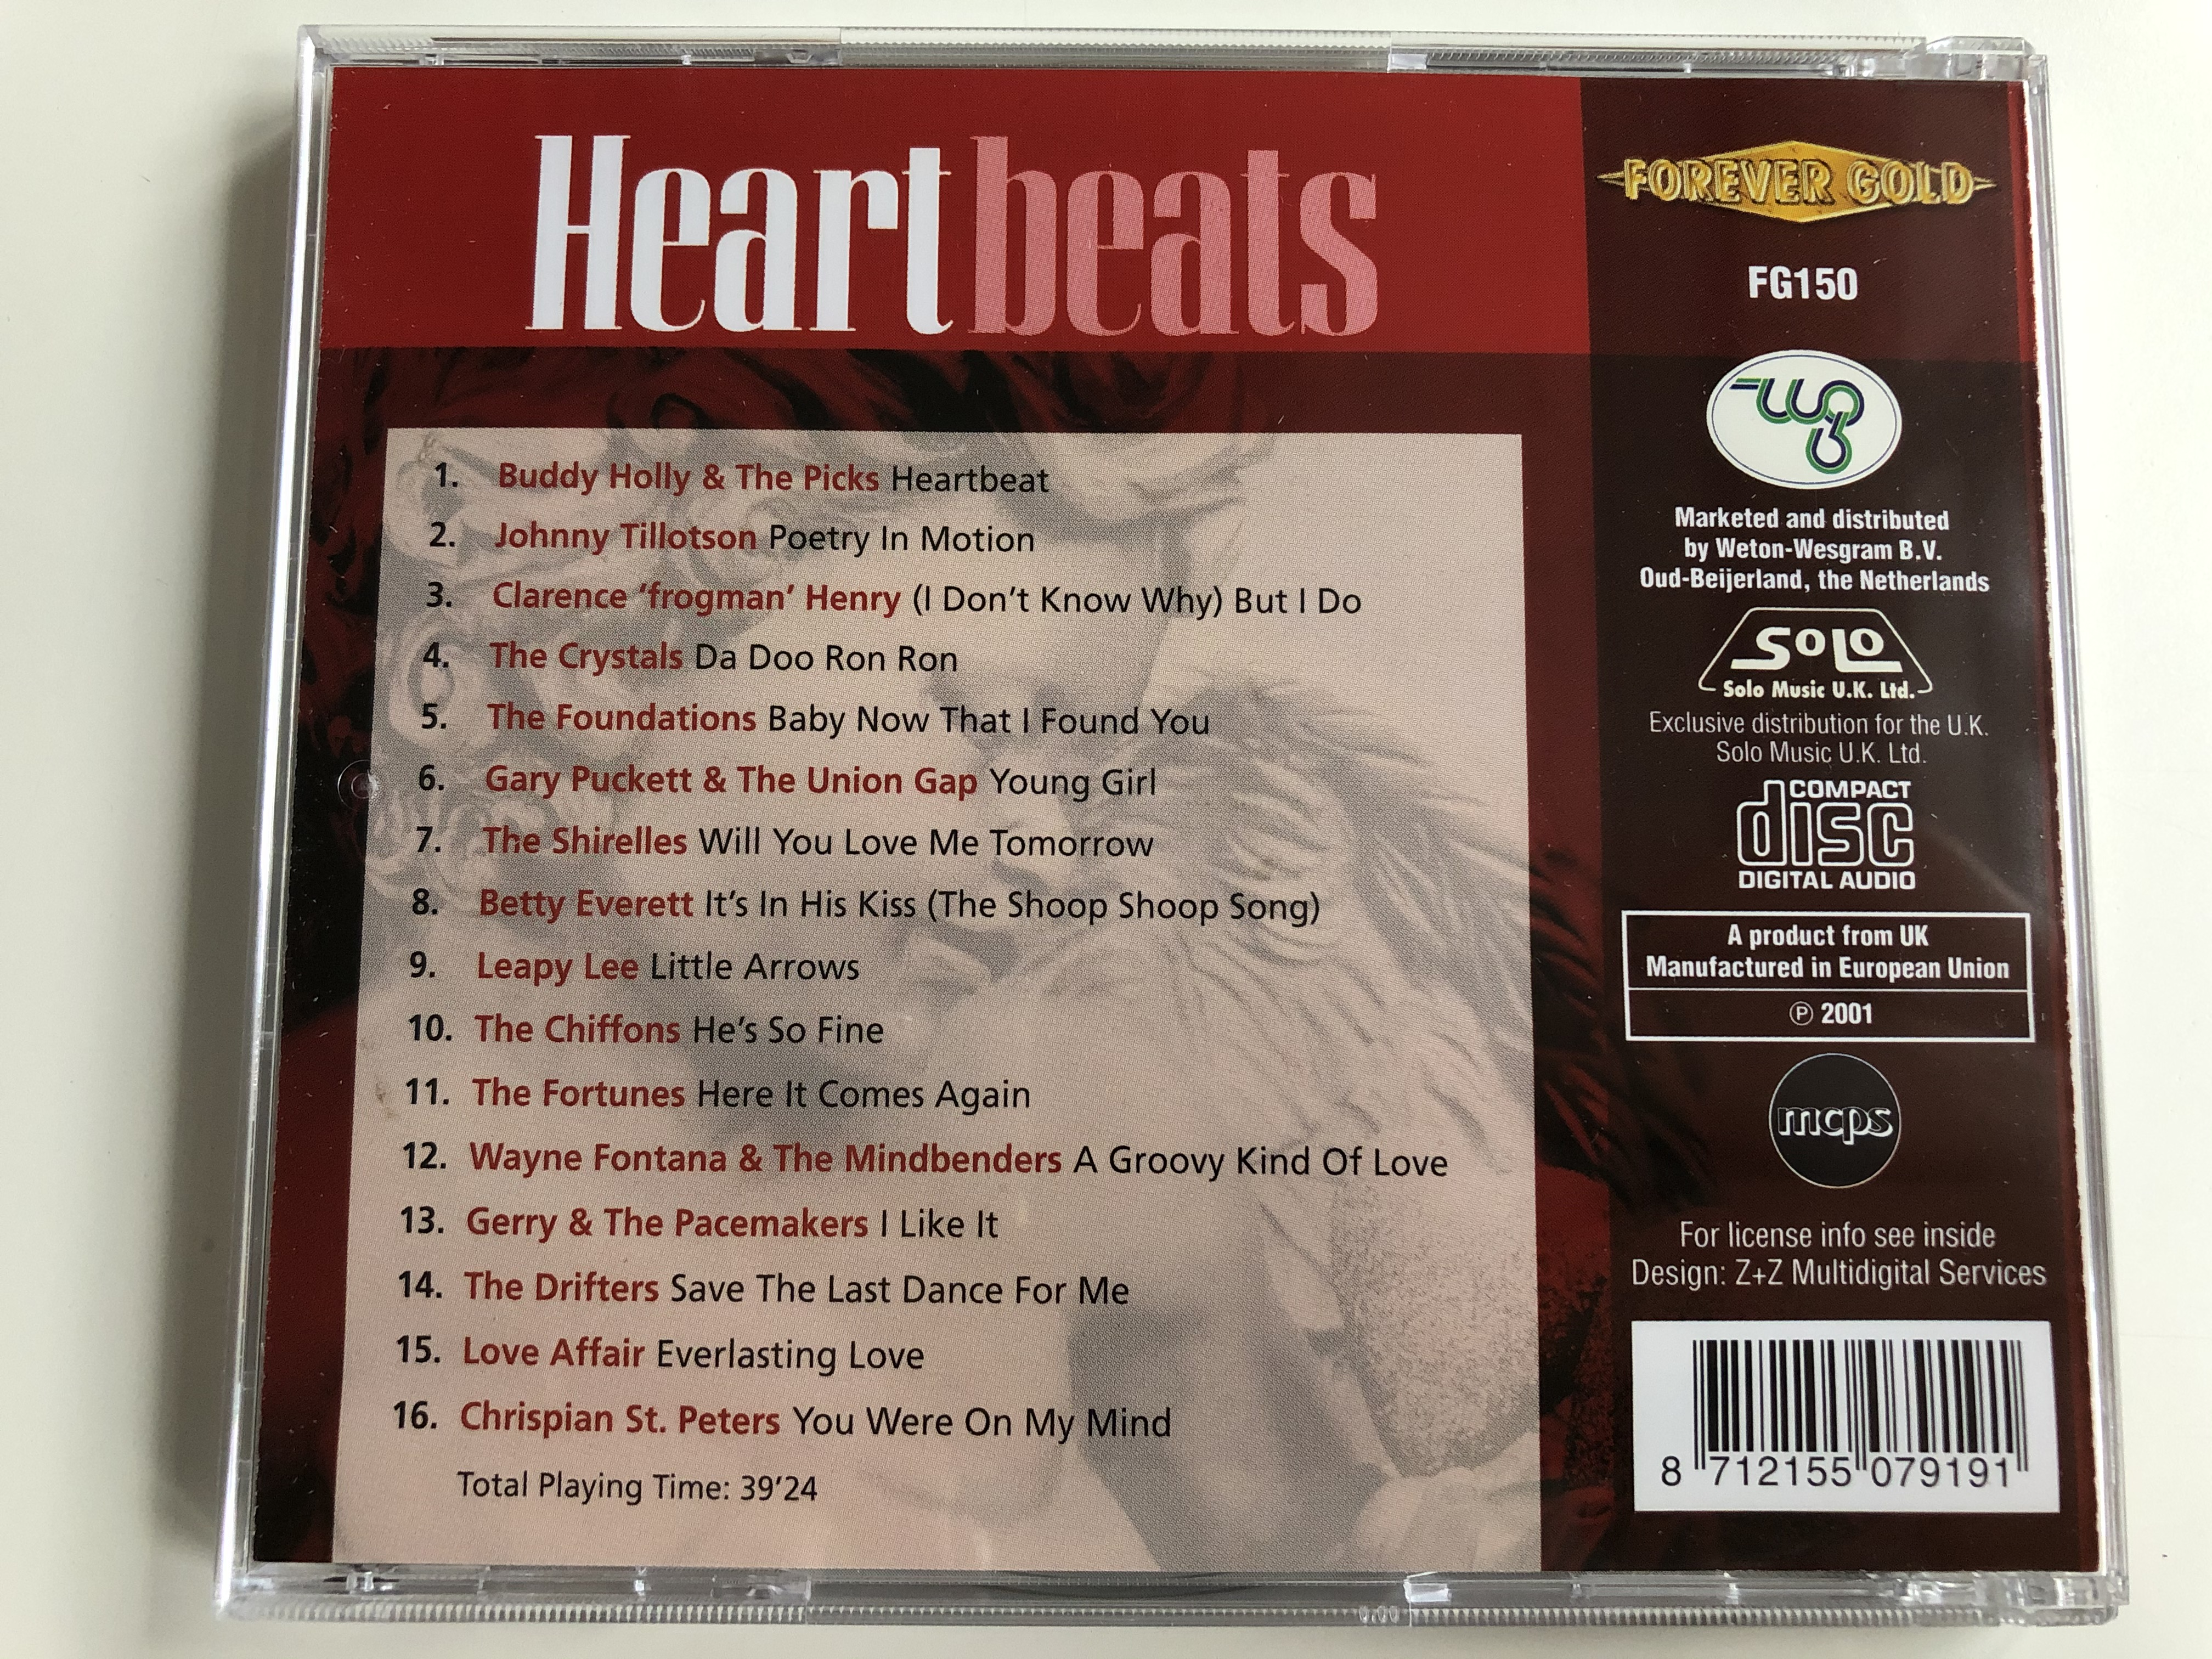 heartbeats-buddy-holly-the-picks-johnny-tillotson-the-foundations-the-shirelles-forever-gold-audio-cd-2001-fg150-4-.jpg